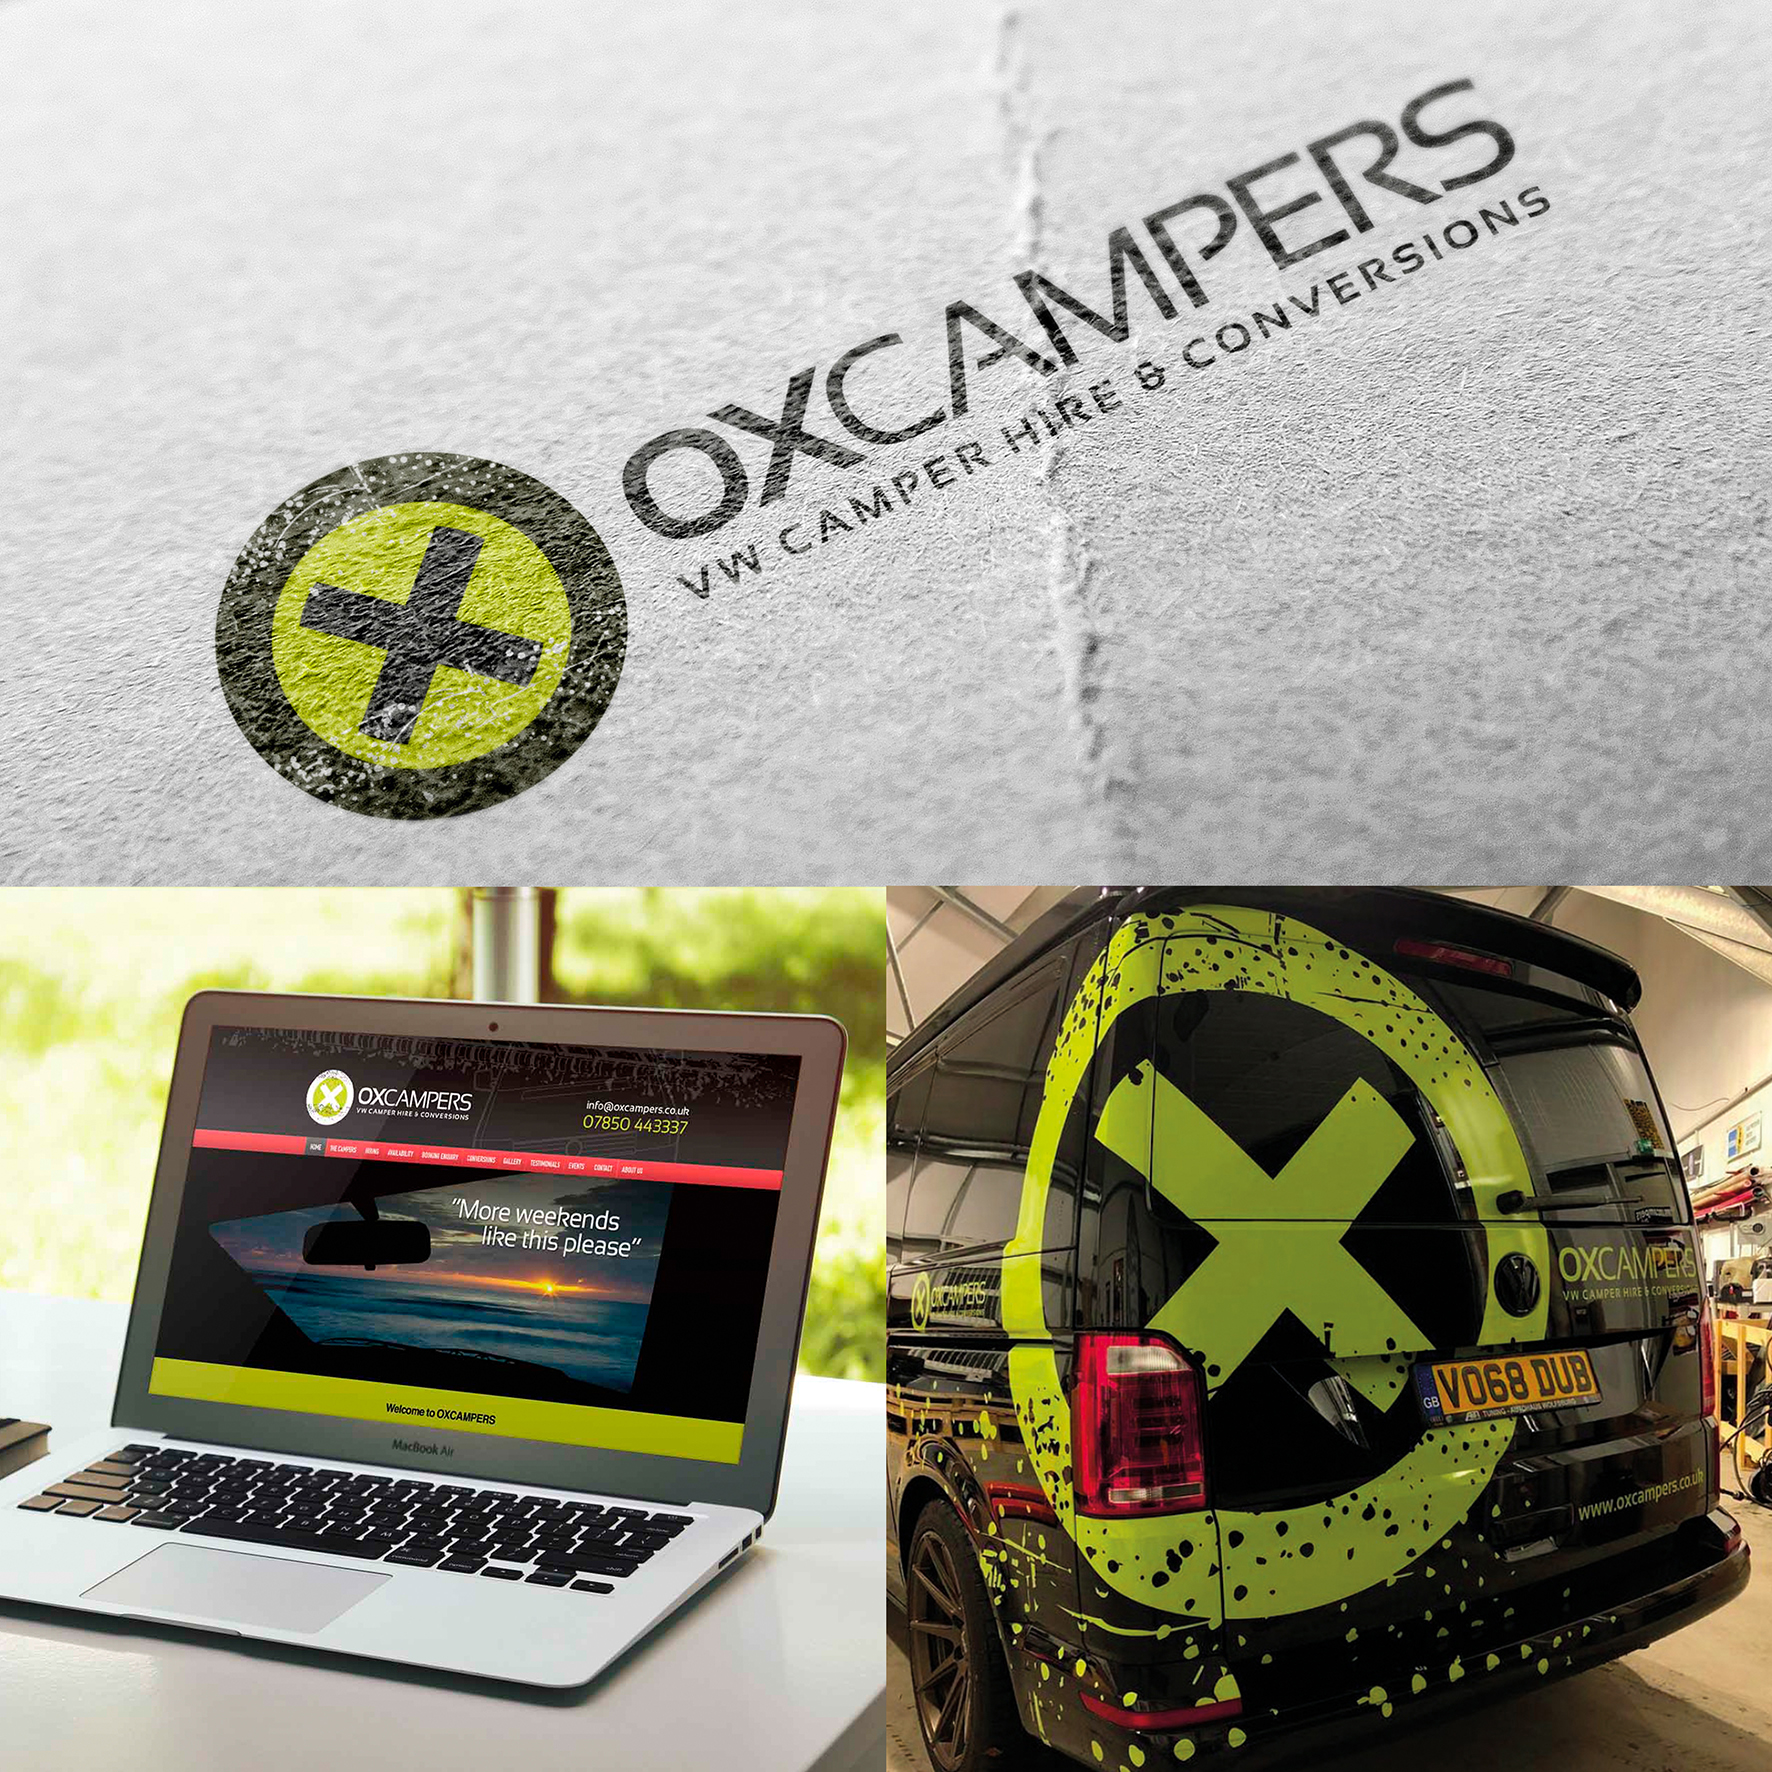 oxcampers rebranding applications